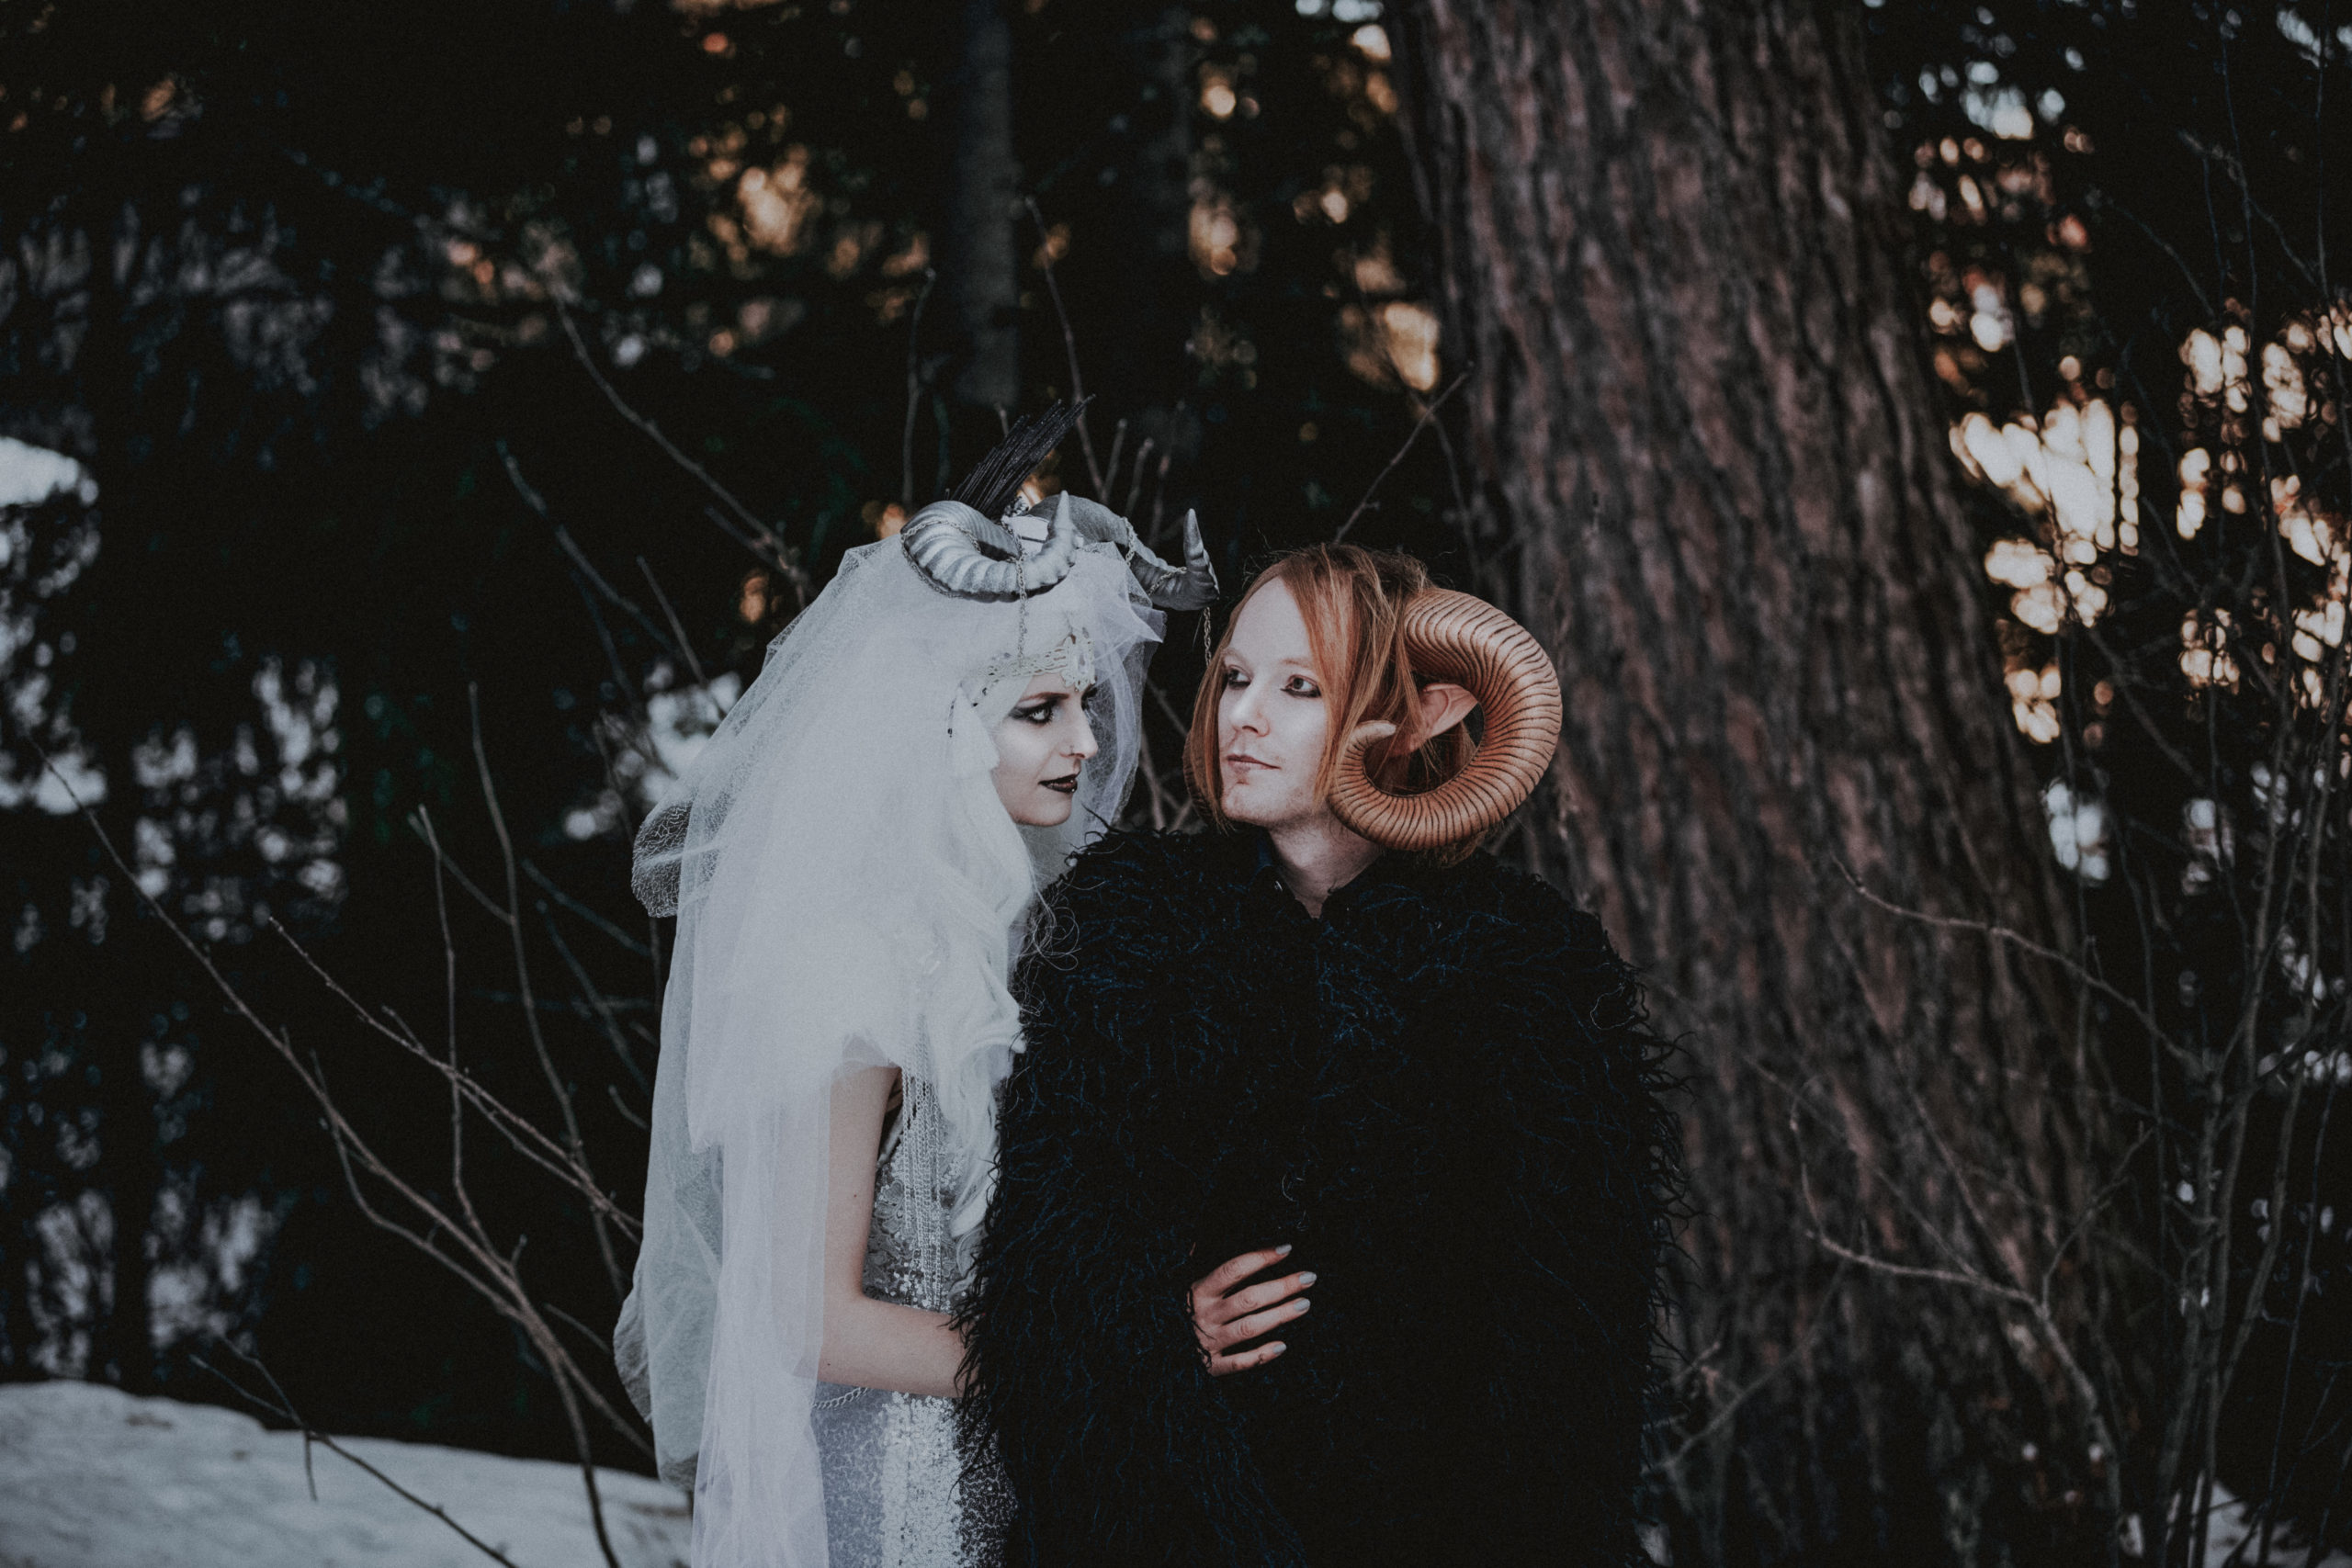 Gothic Themed Fantasy Wedding in Winter - Gothic Couple Marriage